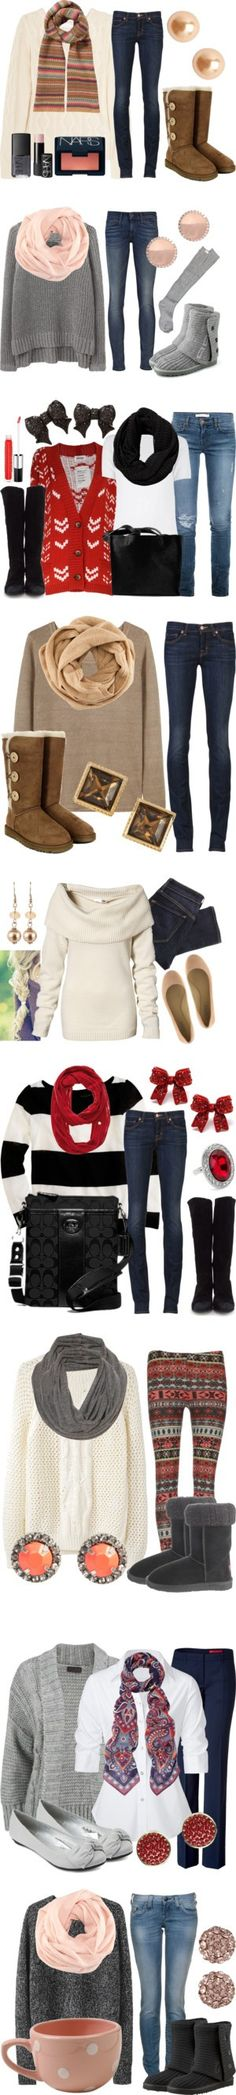 Cute fall/winter outfits.